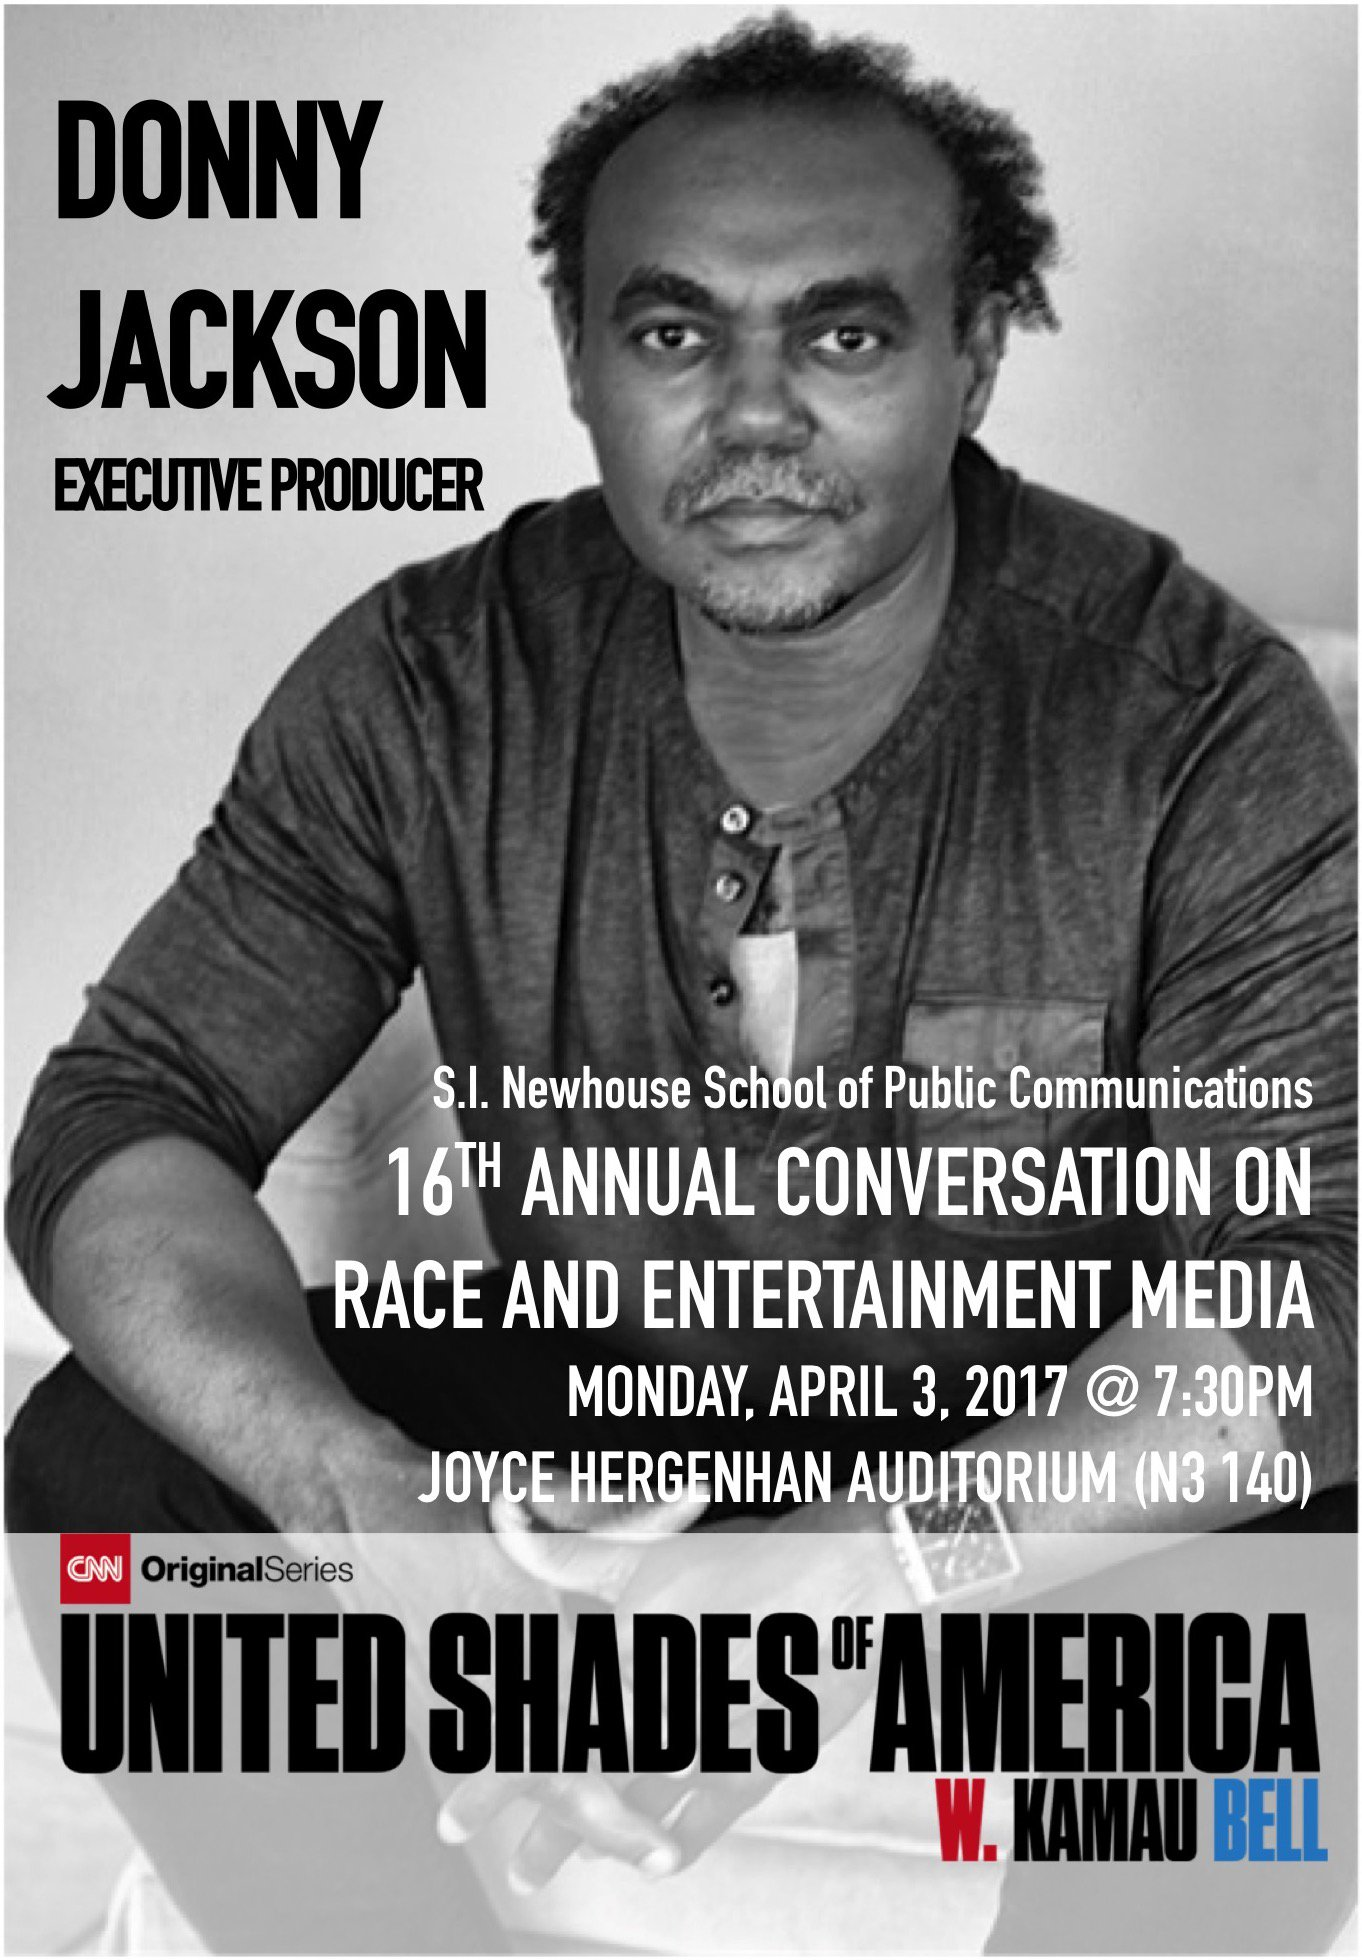 Come tonight to @NewhouseSU and join the convo on race and entertainment with CNN original series EP  @DrDonnyJackson  #journalismmatters https://t.co/ZXgwJlZDw8